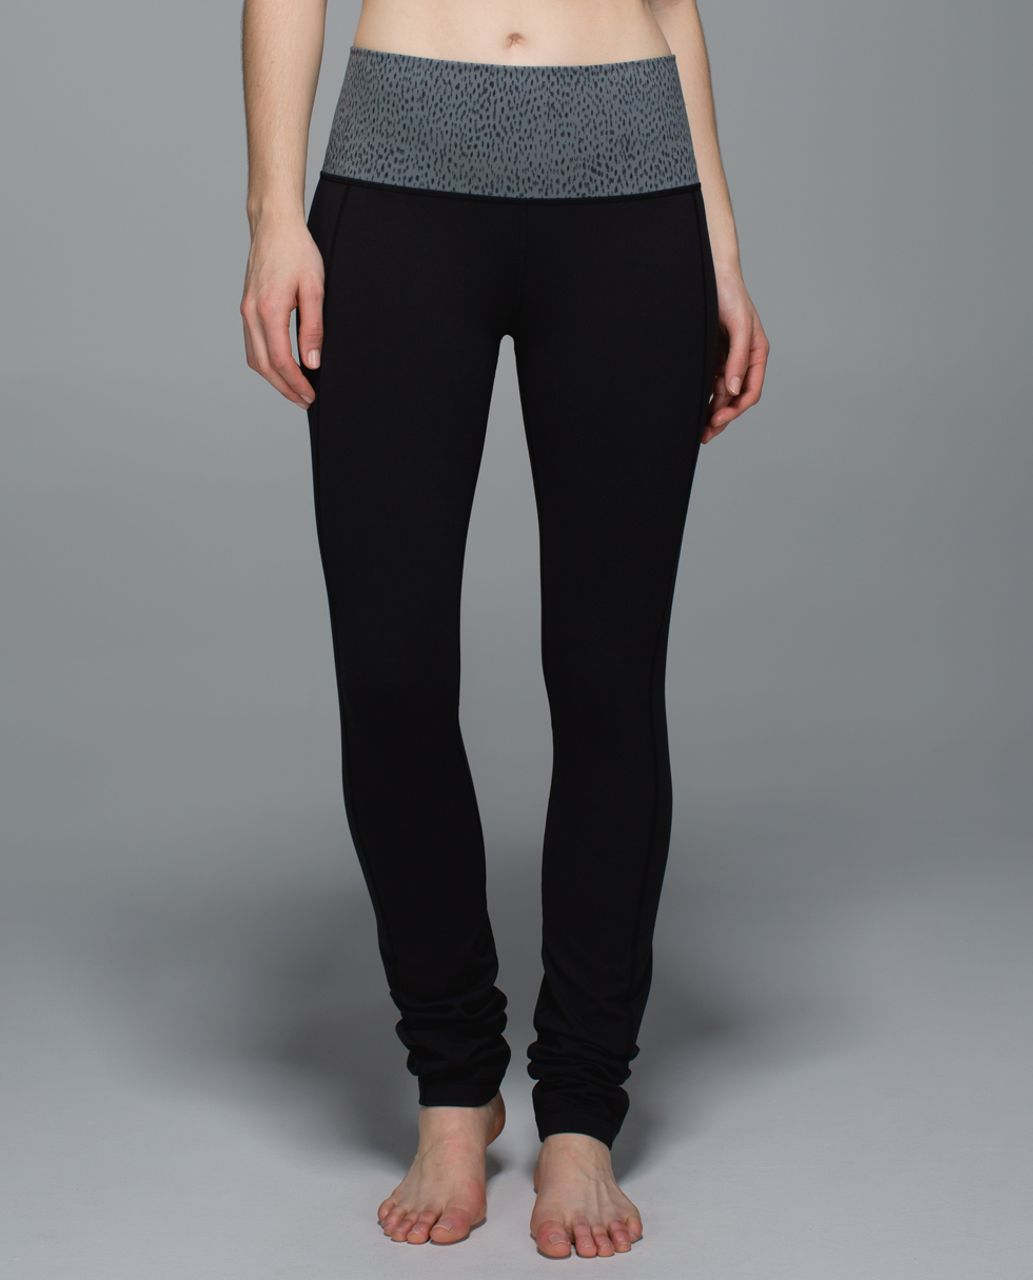 286756b0f Lululemon Skinny Groove Pant II  Full-On Luon (Roll Down) - Black   Dottie  Dash Slate Black - lulu fanatics